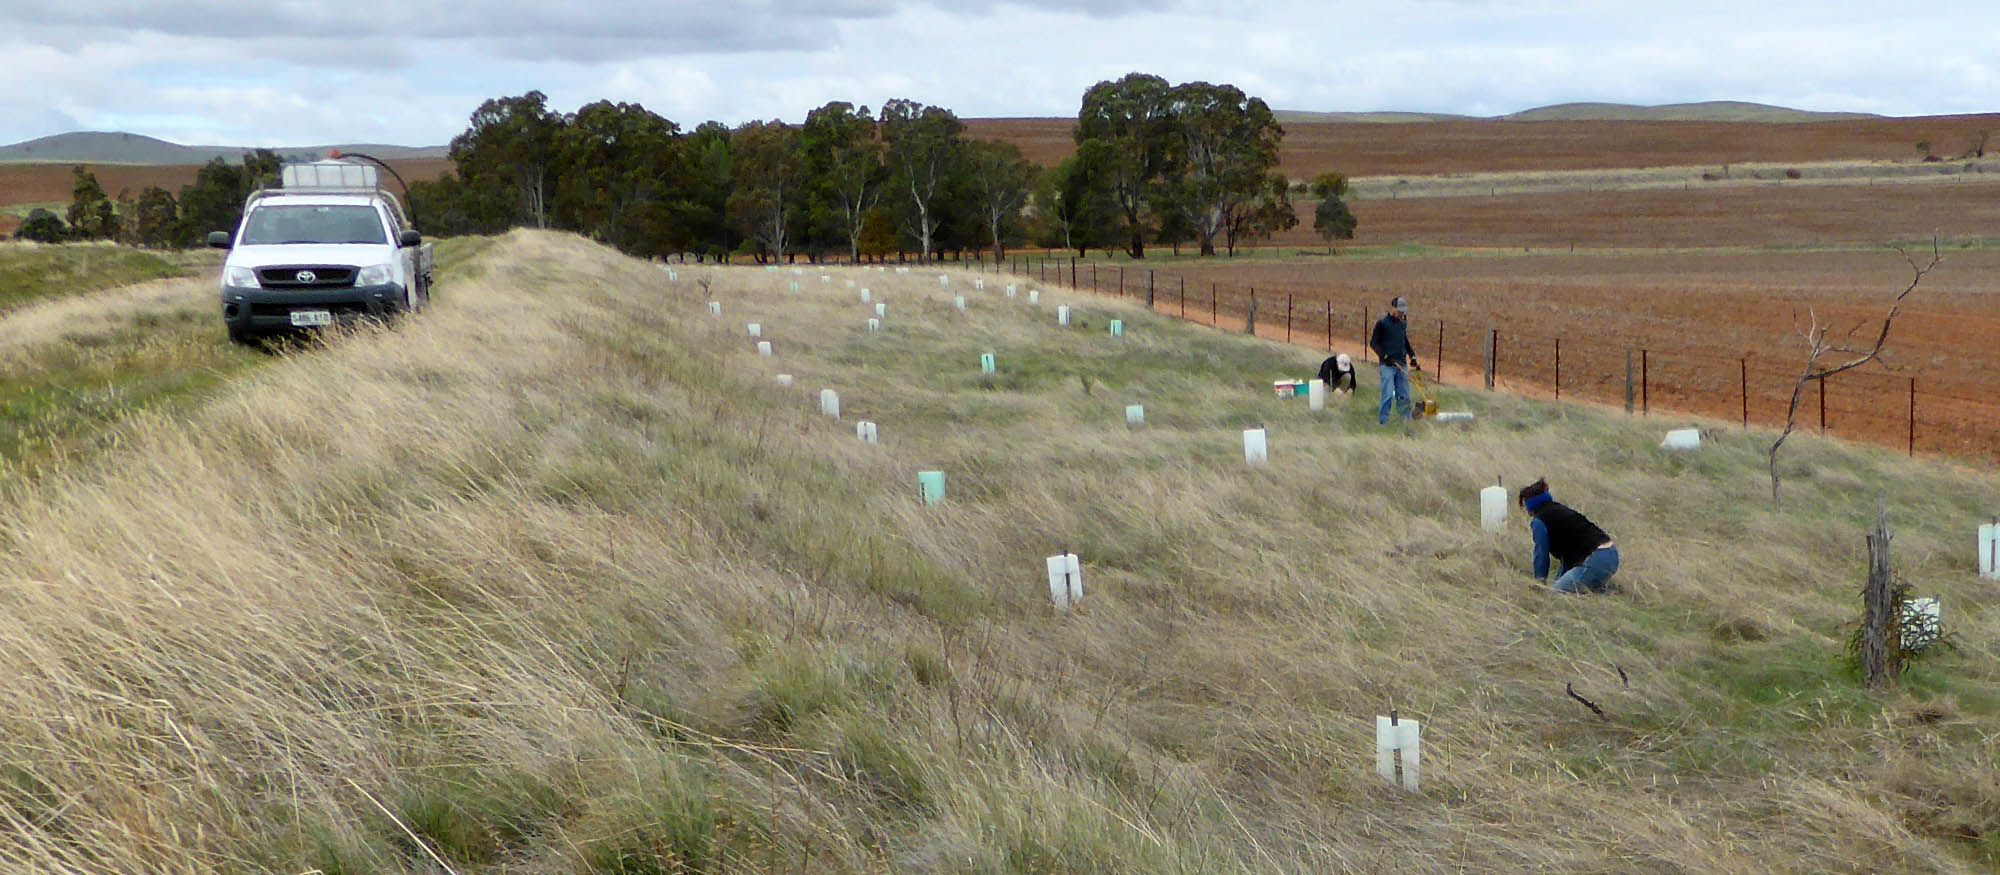 Volunteers planting trees along the Heysen Trail near Spalding, May 2015